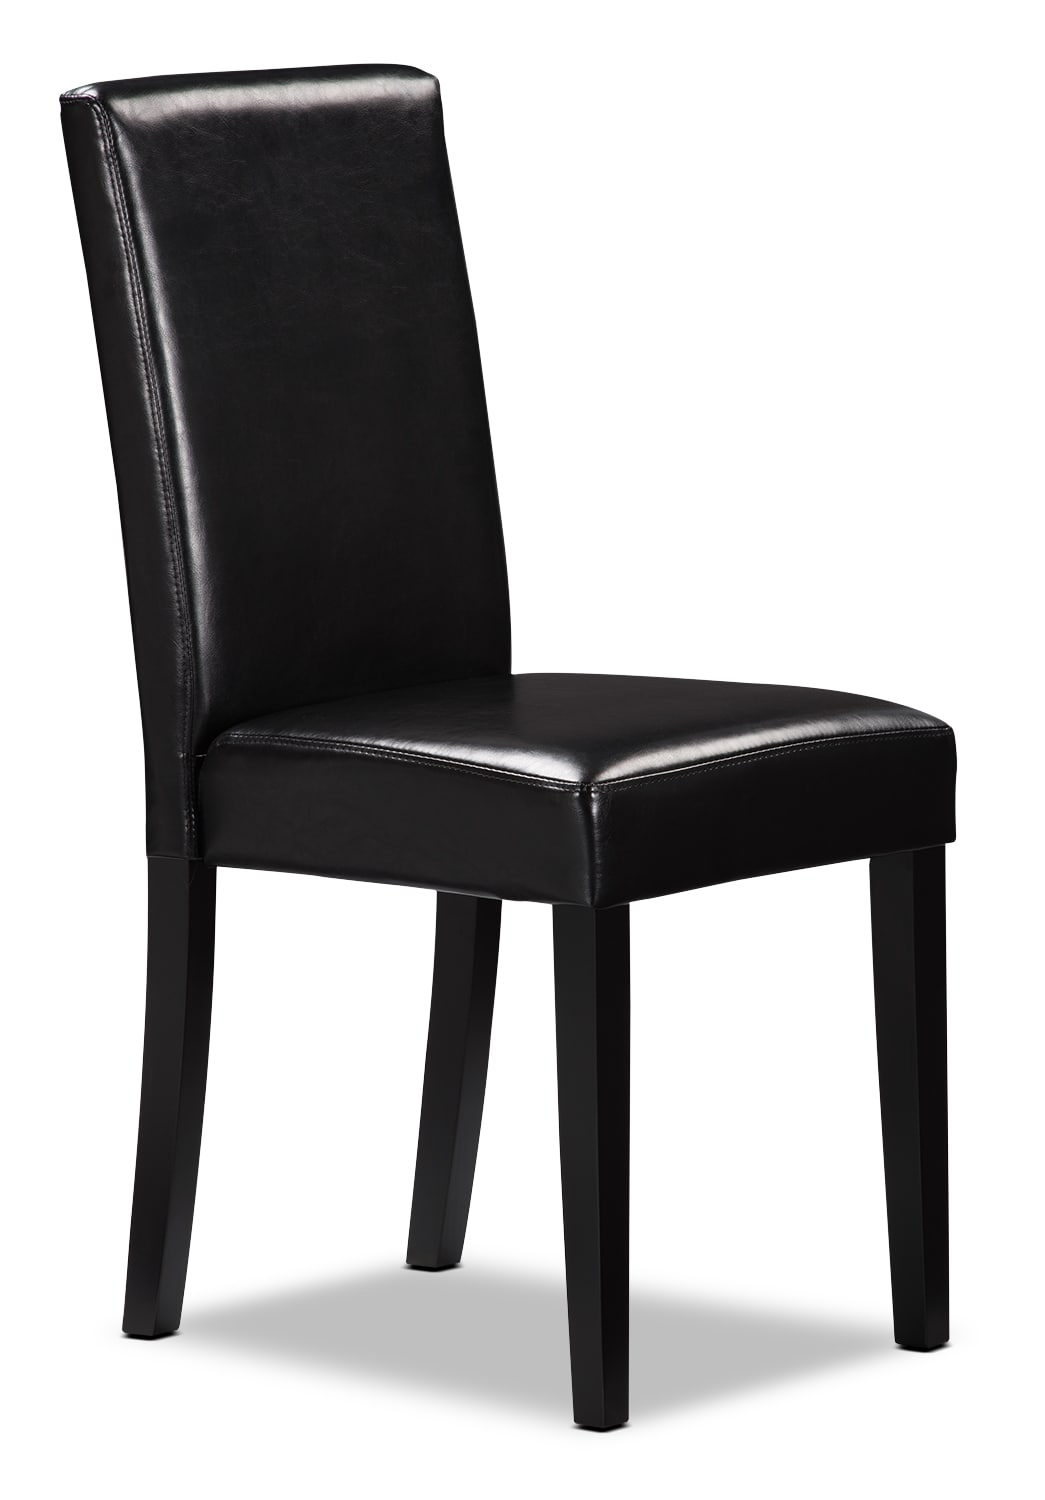 Black faux leather accent dining chair united furniture for Black leather dining chairs